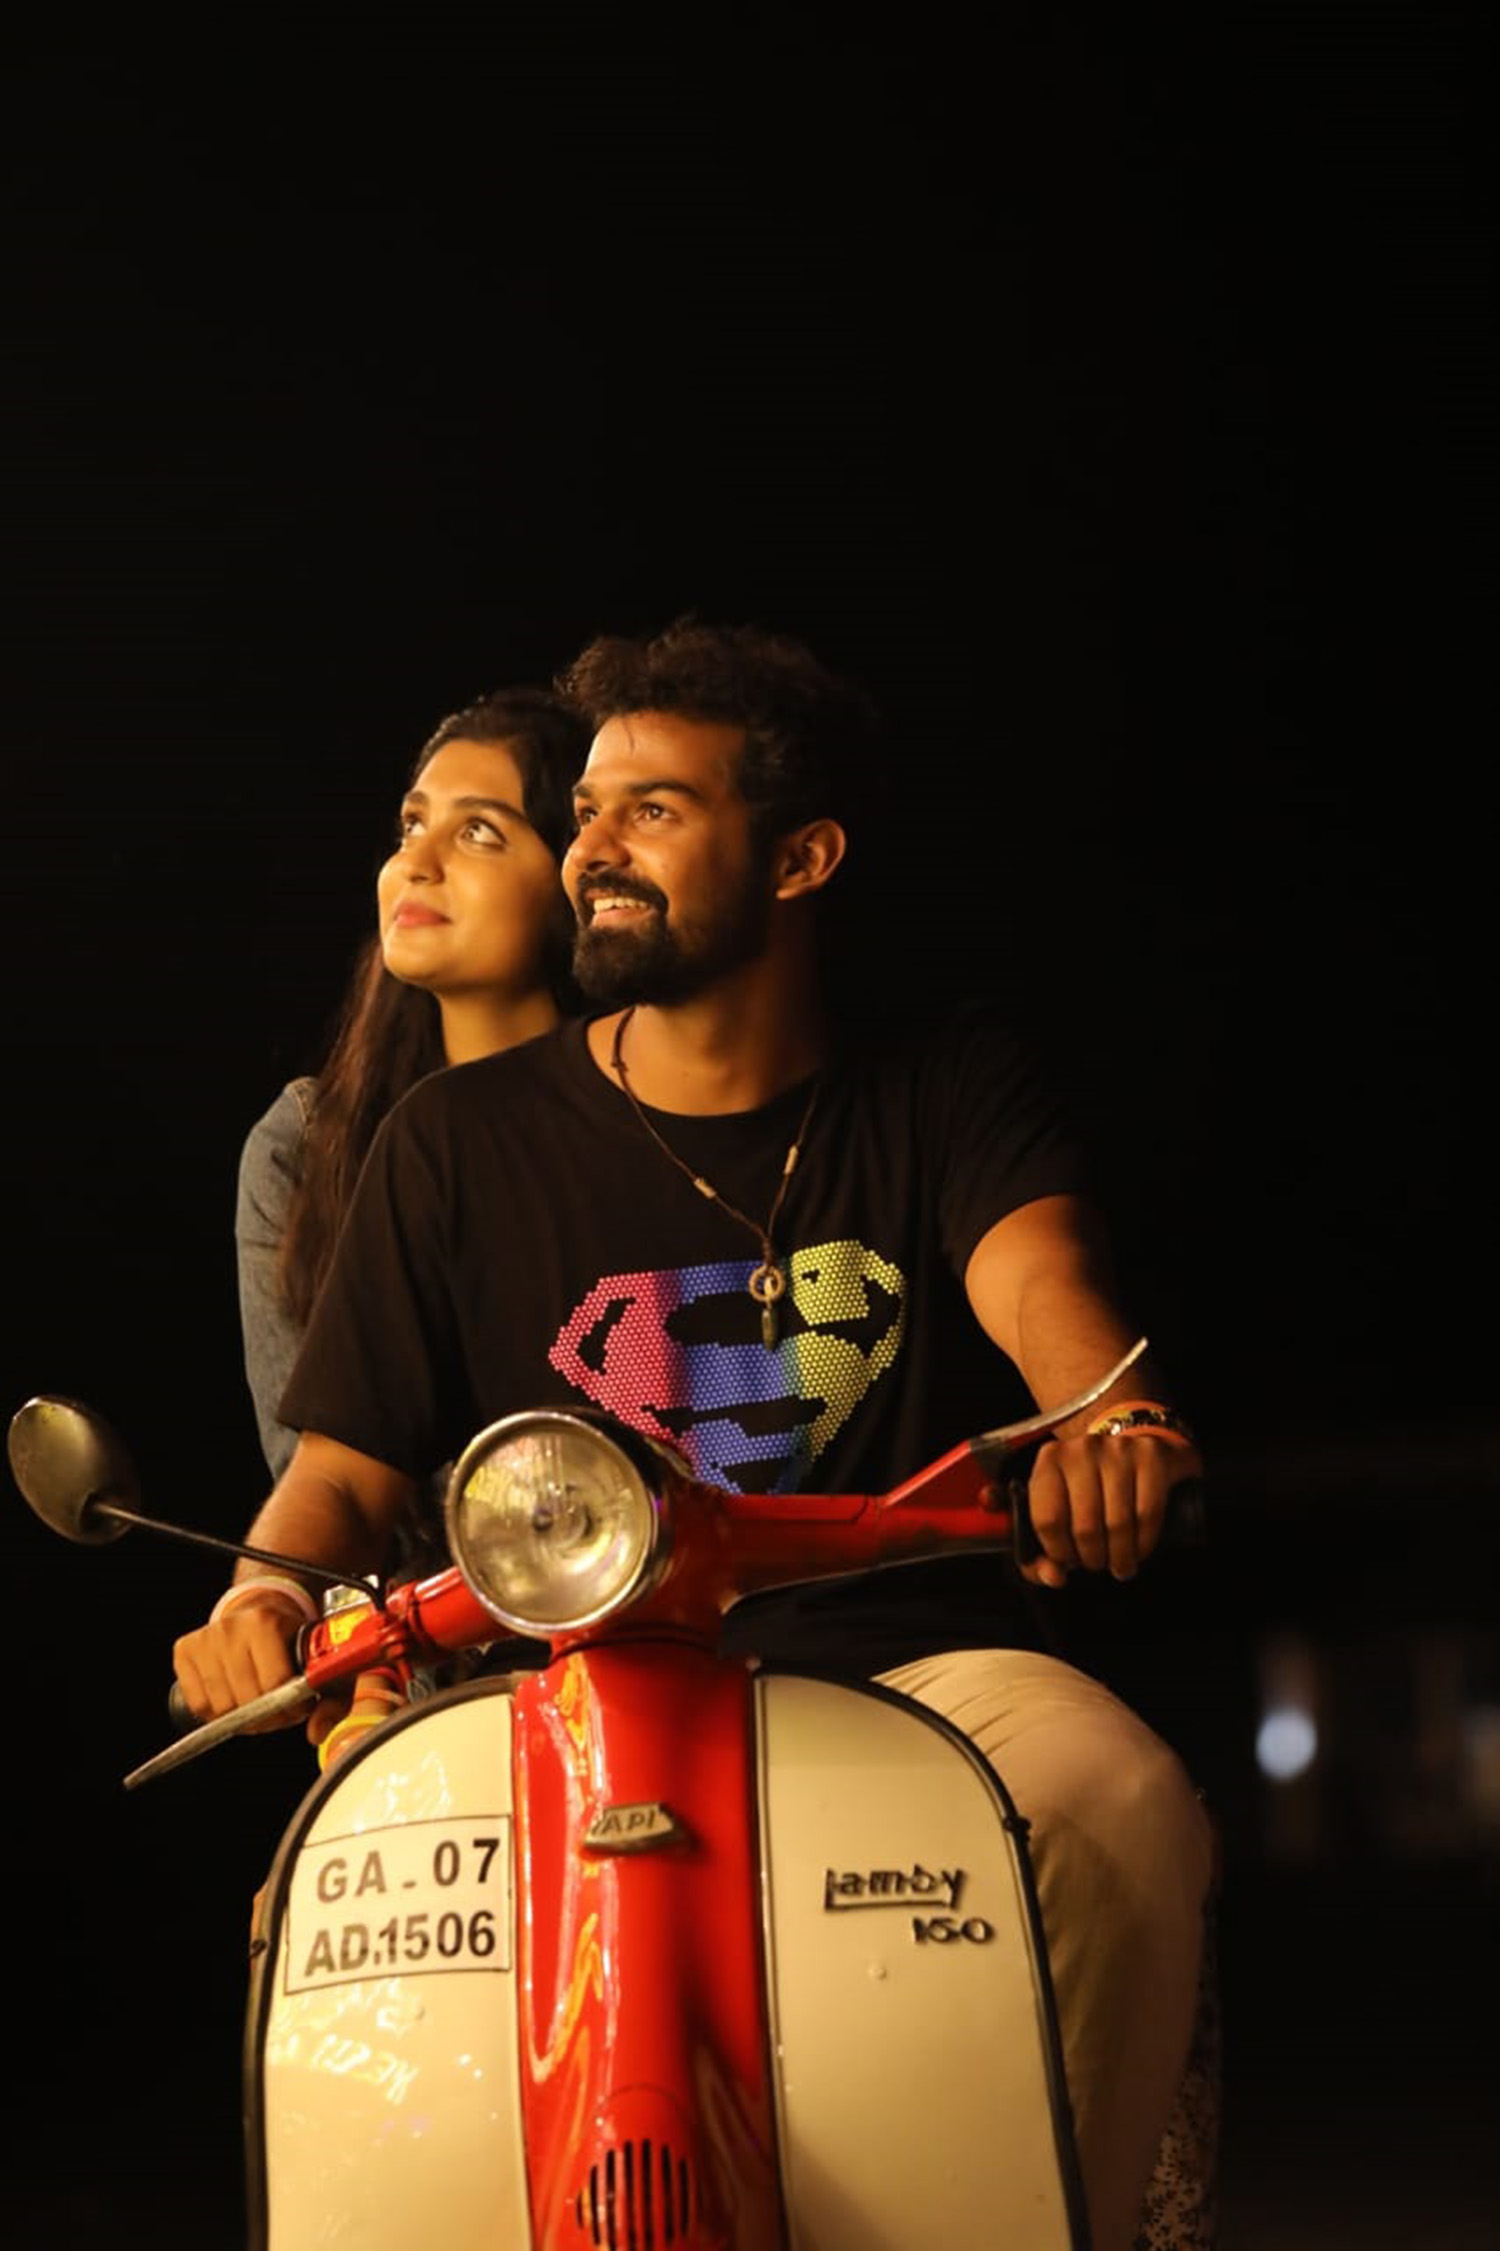 Irupathiyonnam Noottandu,Irupathiyonnam Noottandu movie stills,Irupathiyonnam Noottandu latest stills,pranav mohanlal,pranav mohanlal in Irupathiyonnam Noottandu,Irupathiyonnam Noottandu movie pranav mohanlal's stills,pranav mohanlal's new movie stills,pranav mohanlal's photos,Irupathiyonnam Noottandu movie pranav mohanlal's new stills,Irupathiyonnam Noottandu movie exclusive stills